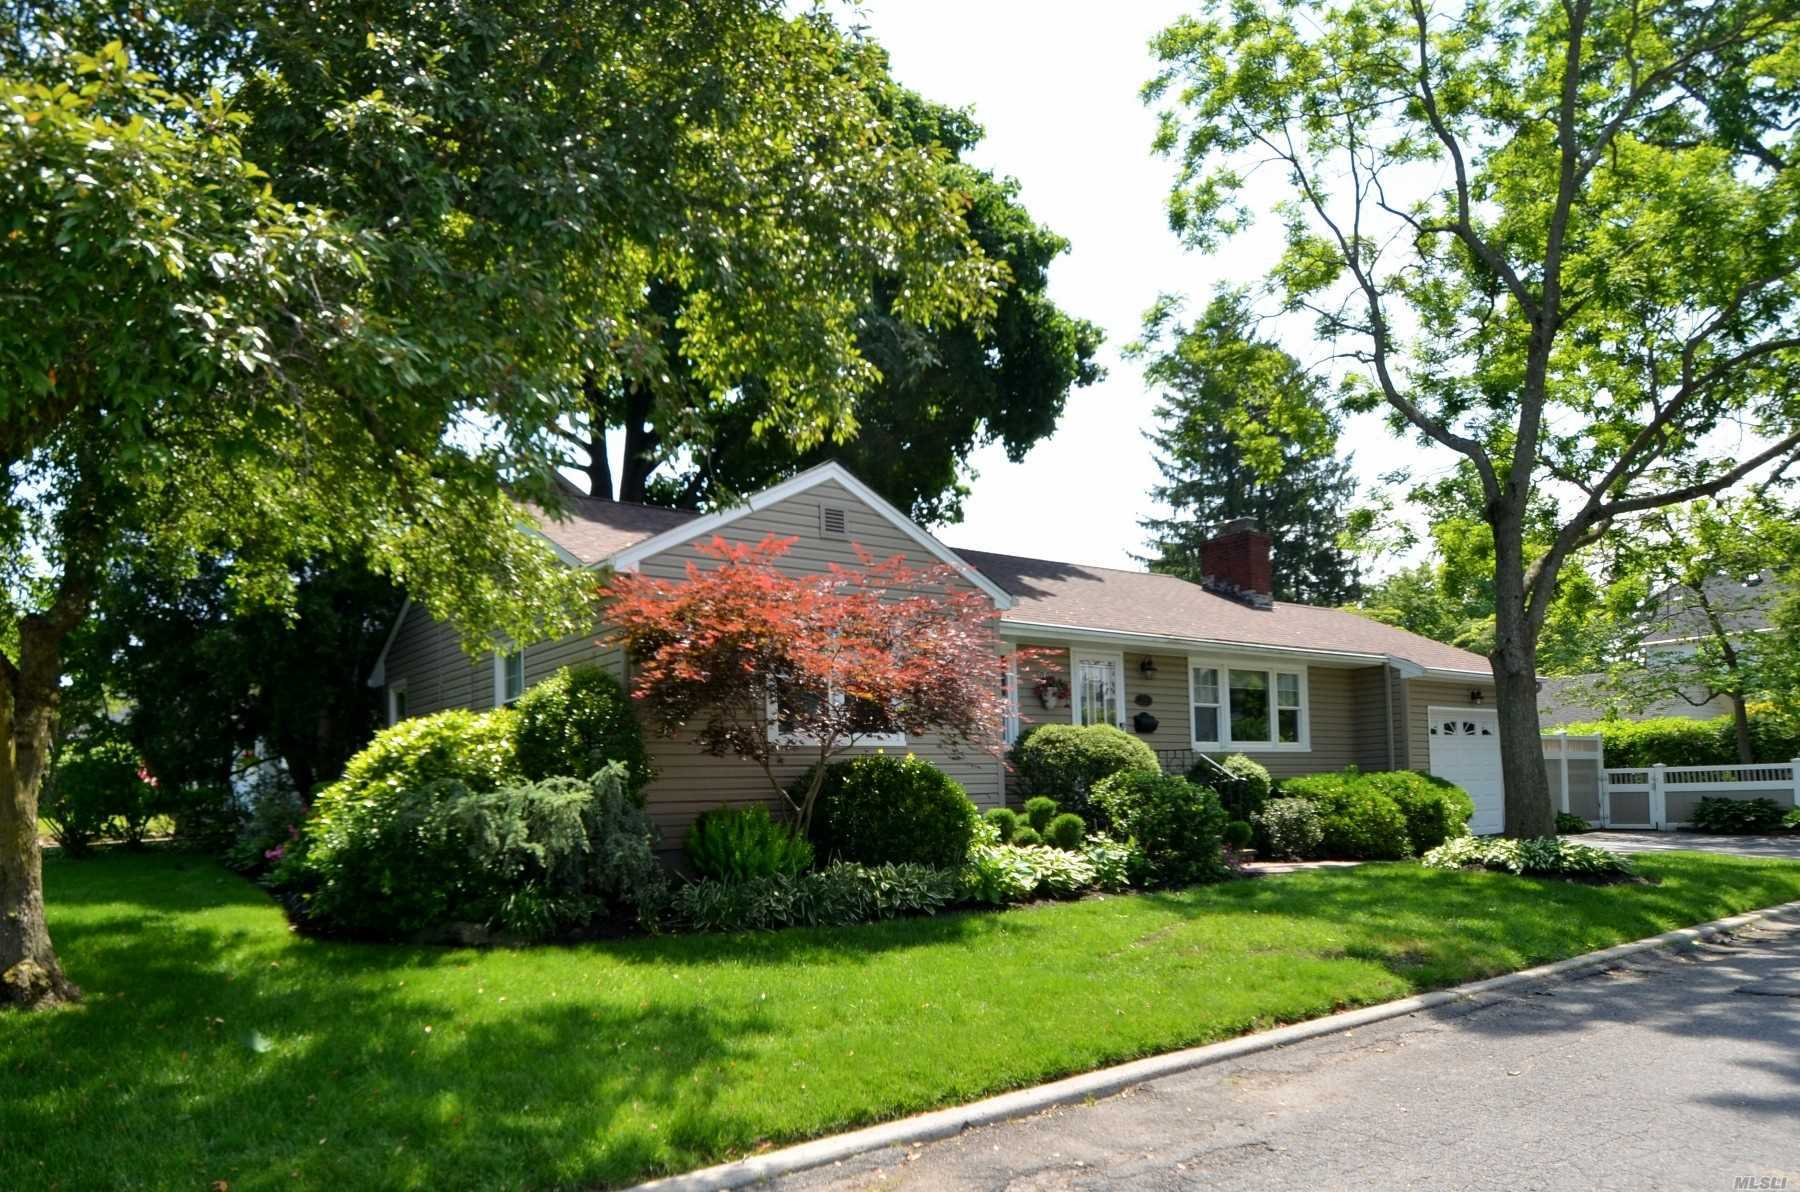 Meticulously Maintained Ranch! Ef, Lr W/Gas Fpl, Fdr, Eik, Master Bdrm, 2 Addl Bdrms, Full Bath. Hardwood Floors Throughout. Full Finished Basement W/Rec Rm, Laundry Rm, Office Rm, Full Bath & Mechanicals. Beautifully Landscaped Yard With Deck.